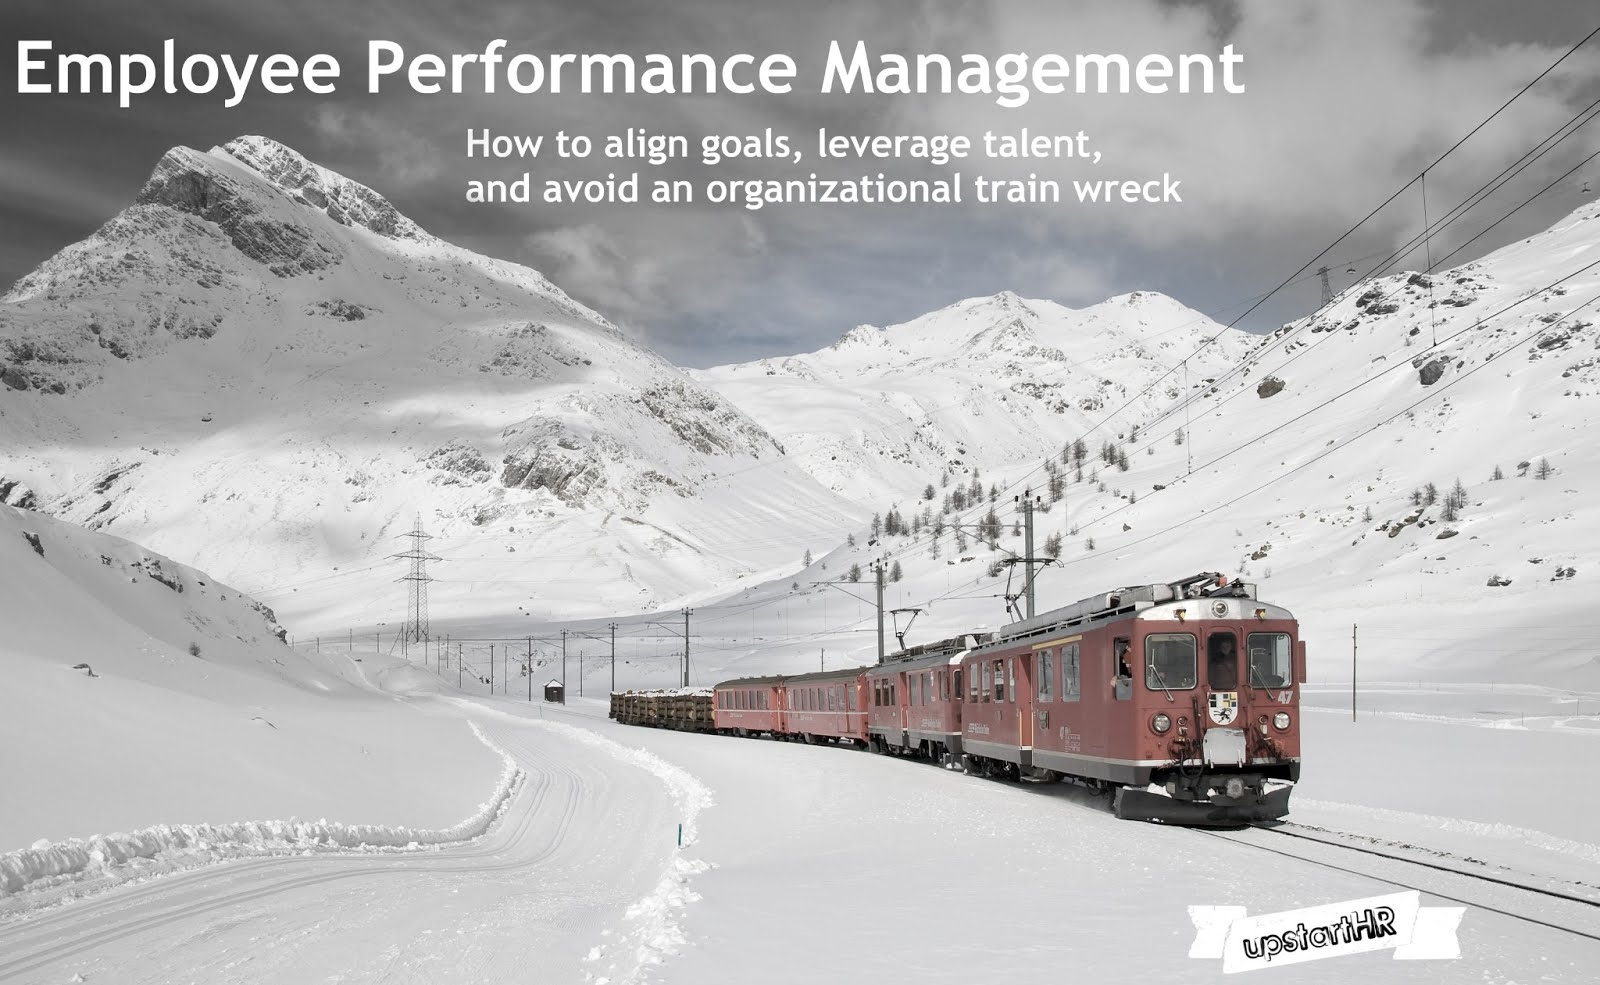 employee performance management ebook cover